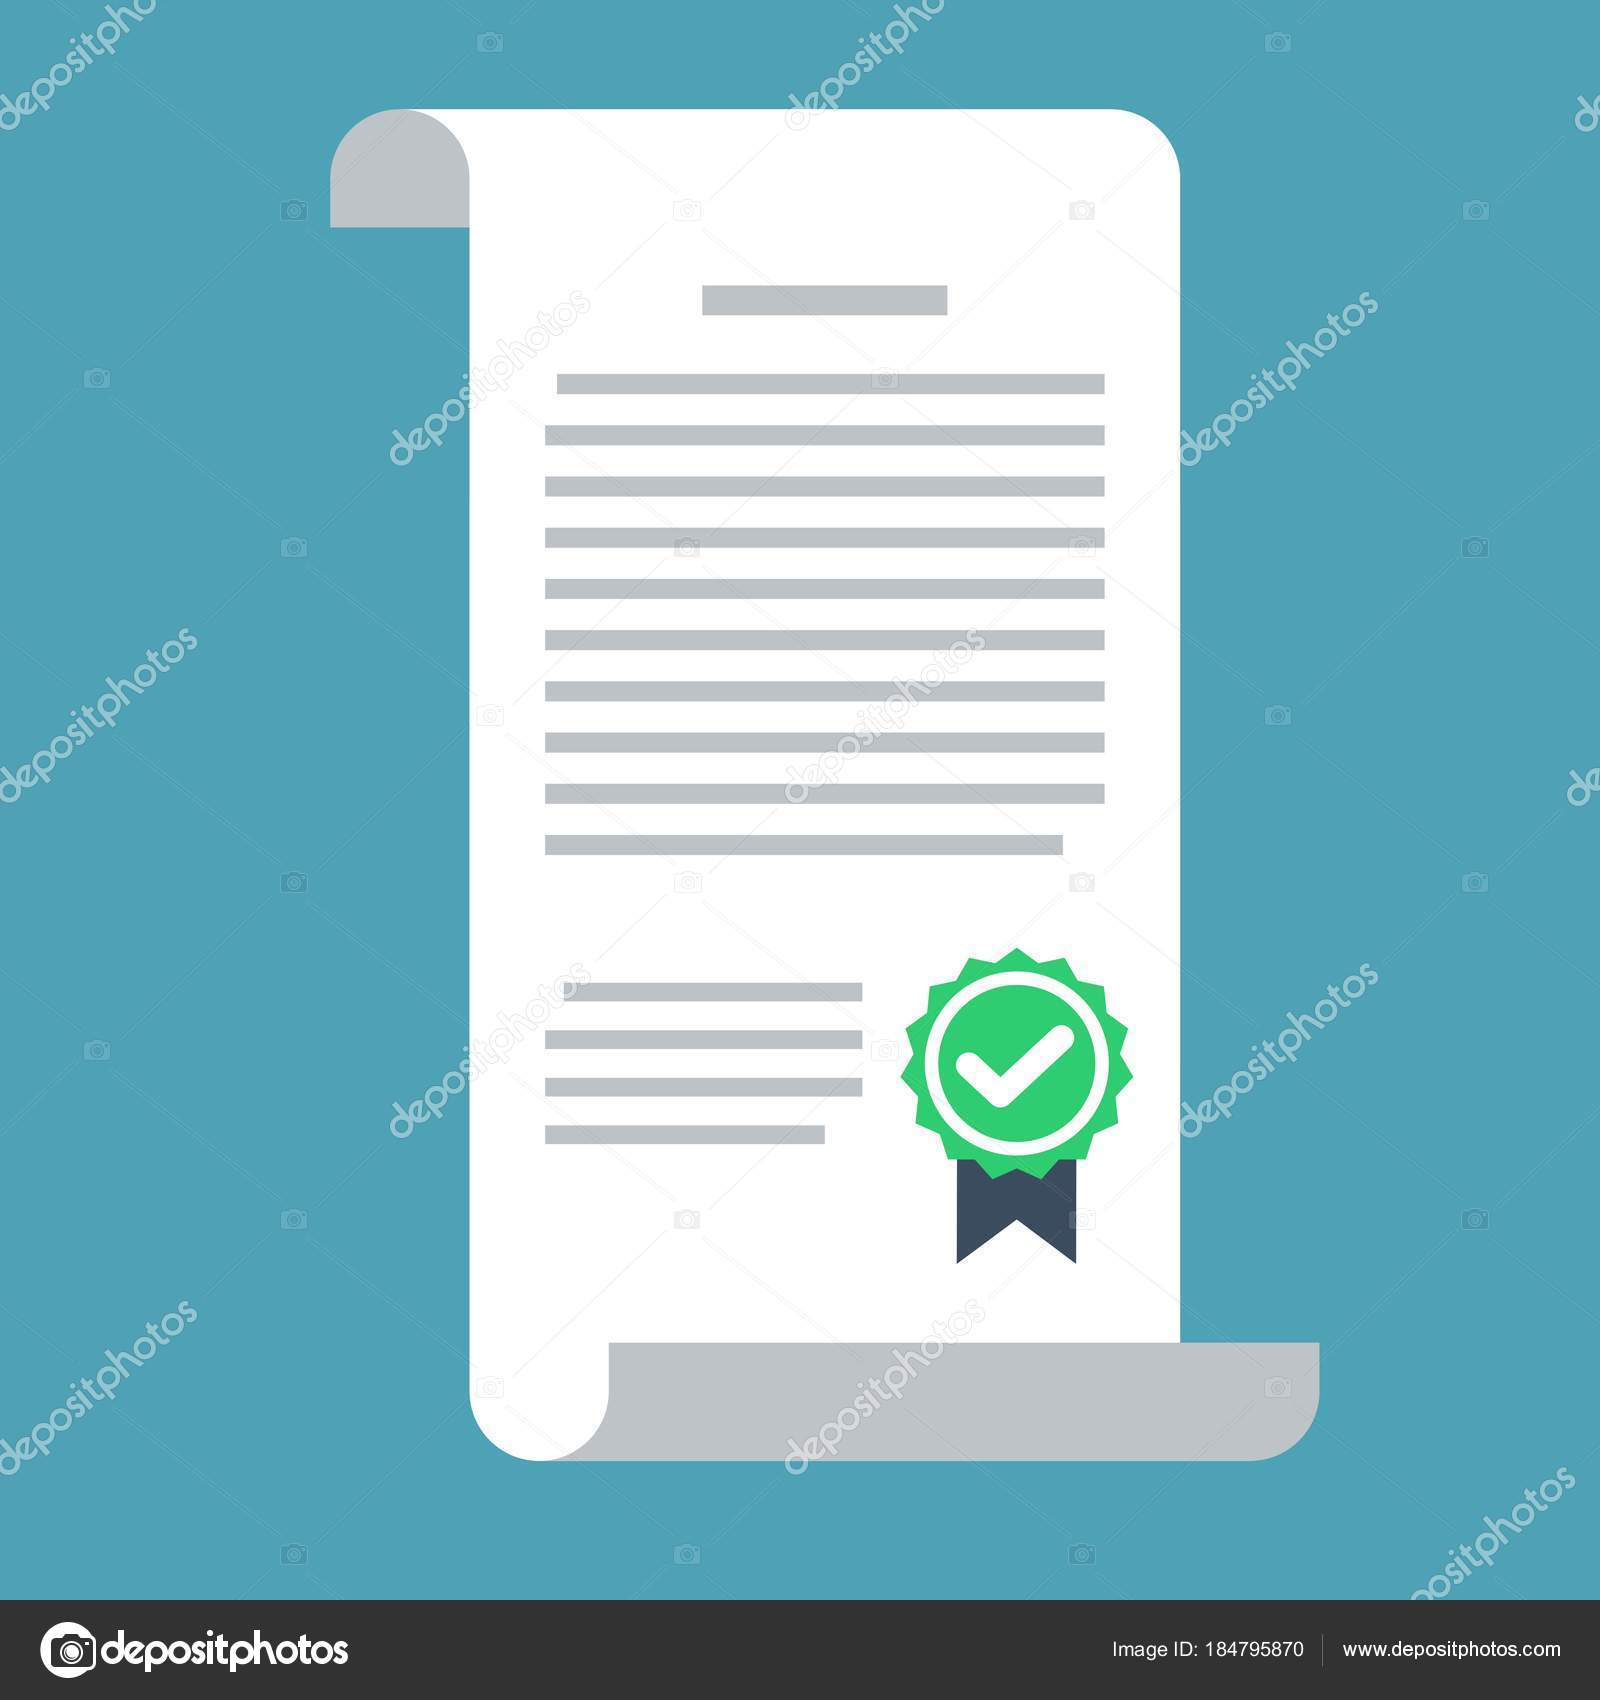 contract vector icon in a flat style isolated on a colored